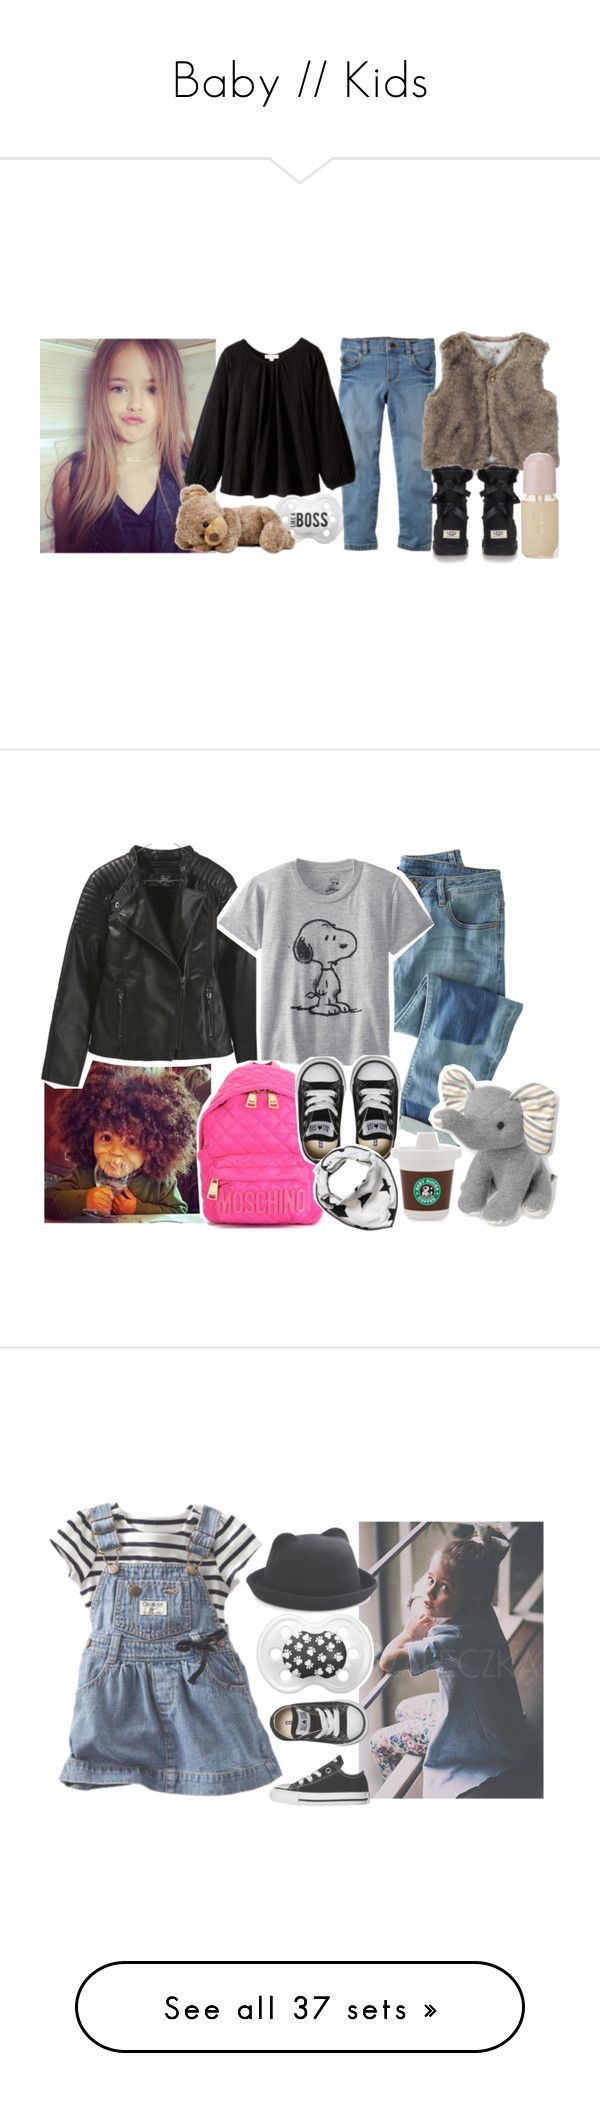 """""""Baby // Kids"""" by iarsotelo ❤ liked on Polyvore featuring Carter's, Appaman, UGG Australia, Dolce&Gabbana, beauty, Wrap, Zara, Moschino, Converse and Molo"""